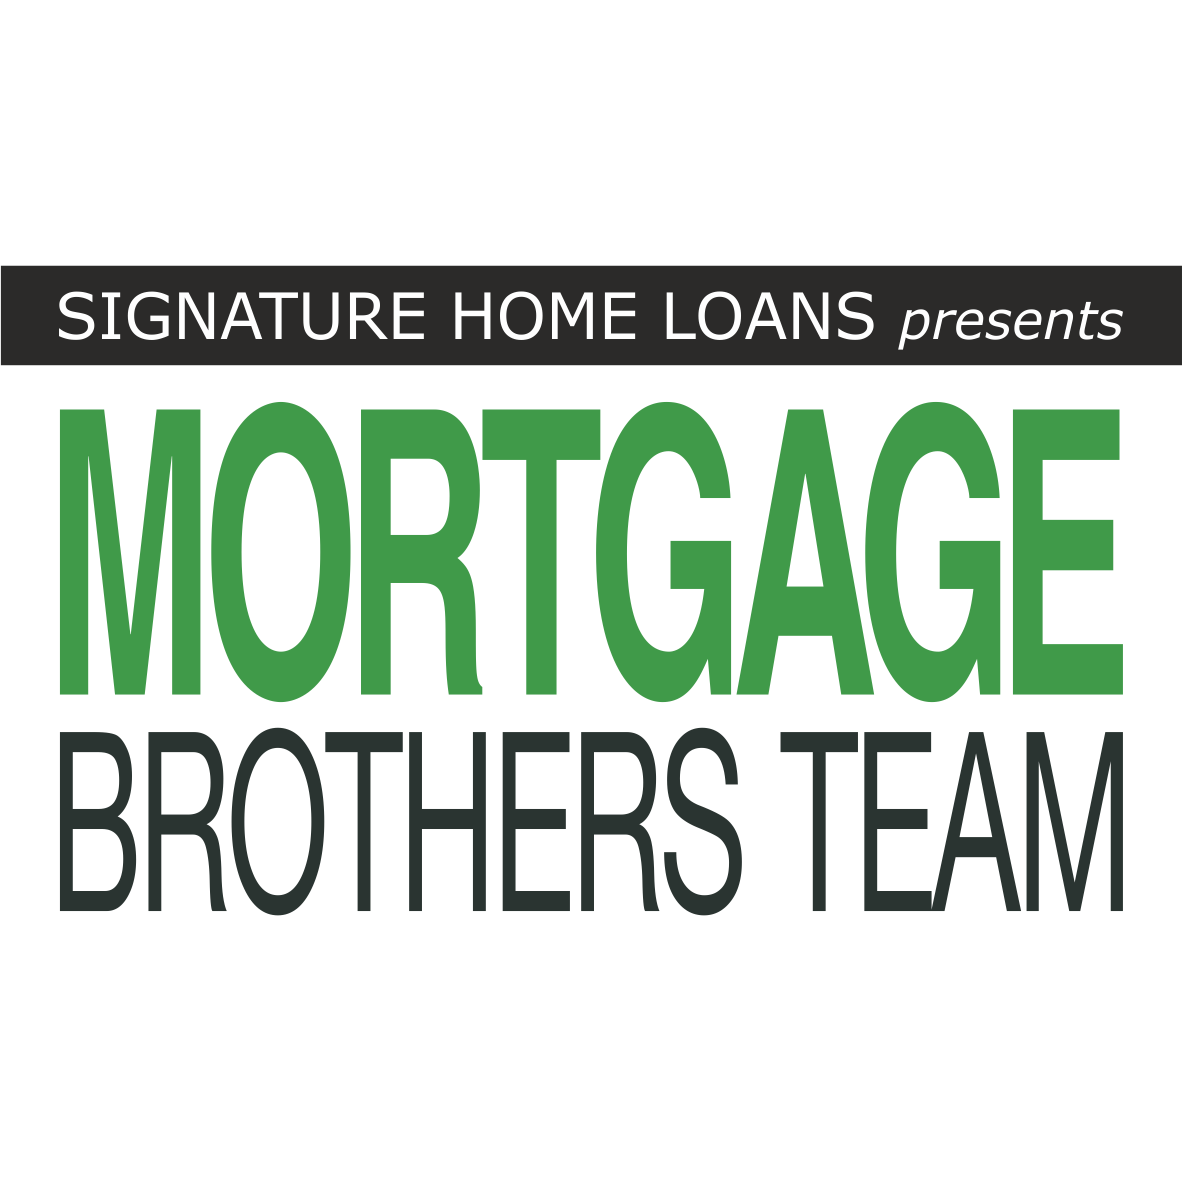 Signature Home Loans Presents The Mortgage Brothers Team